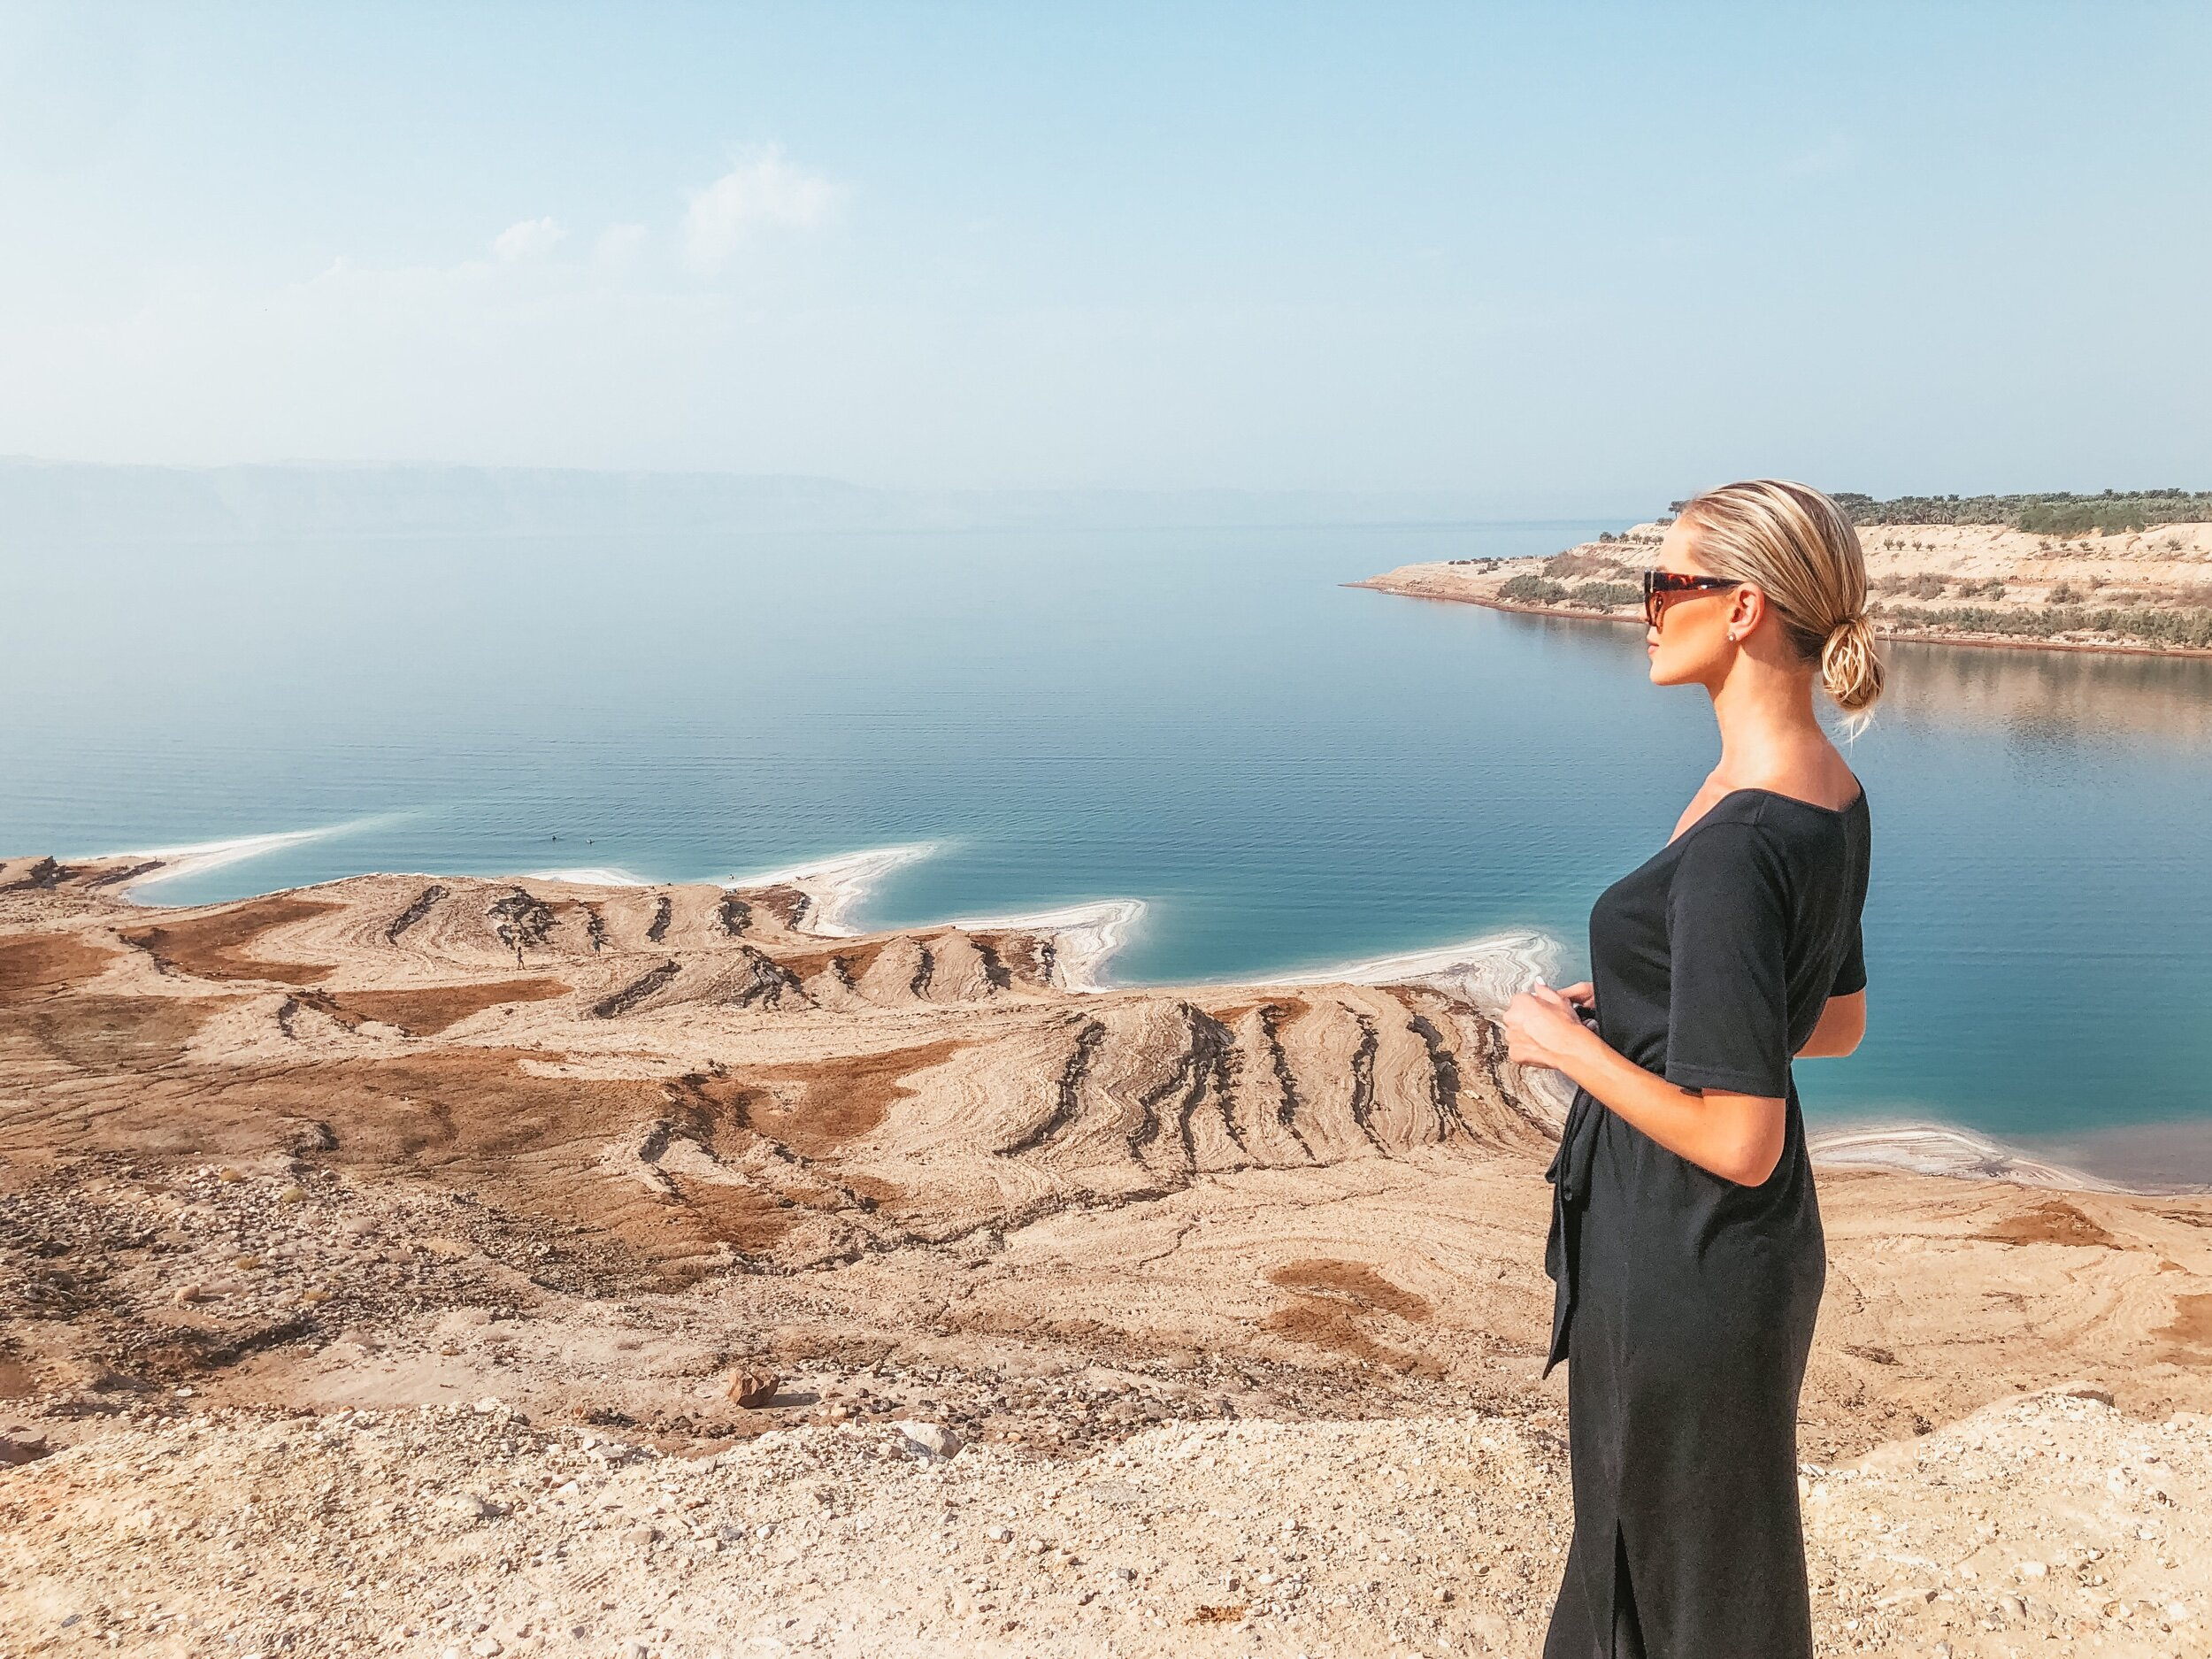 A look out South of the resort area of The Dead Sea.